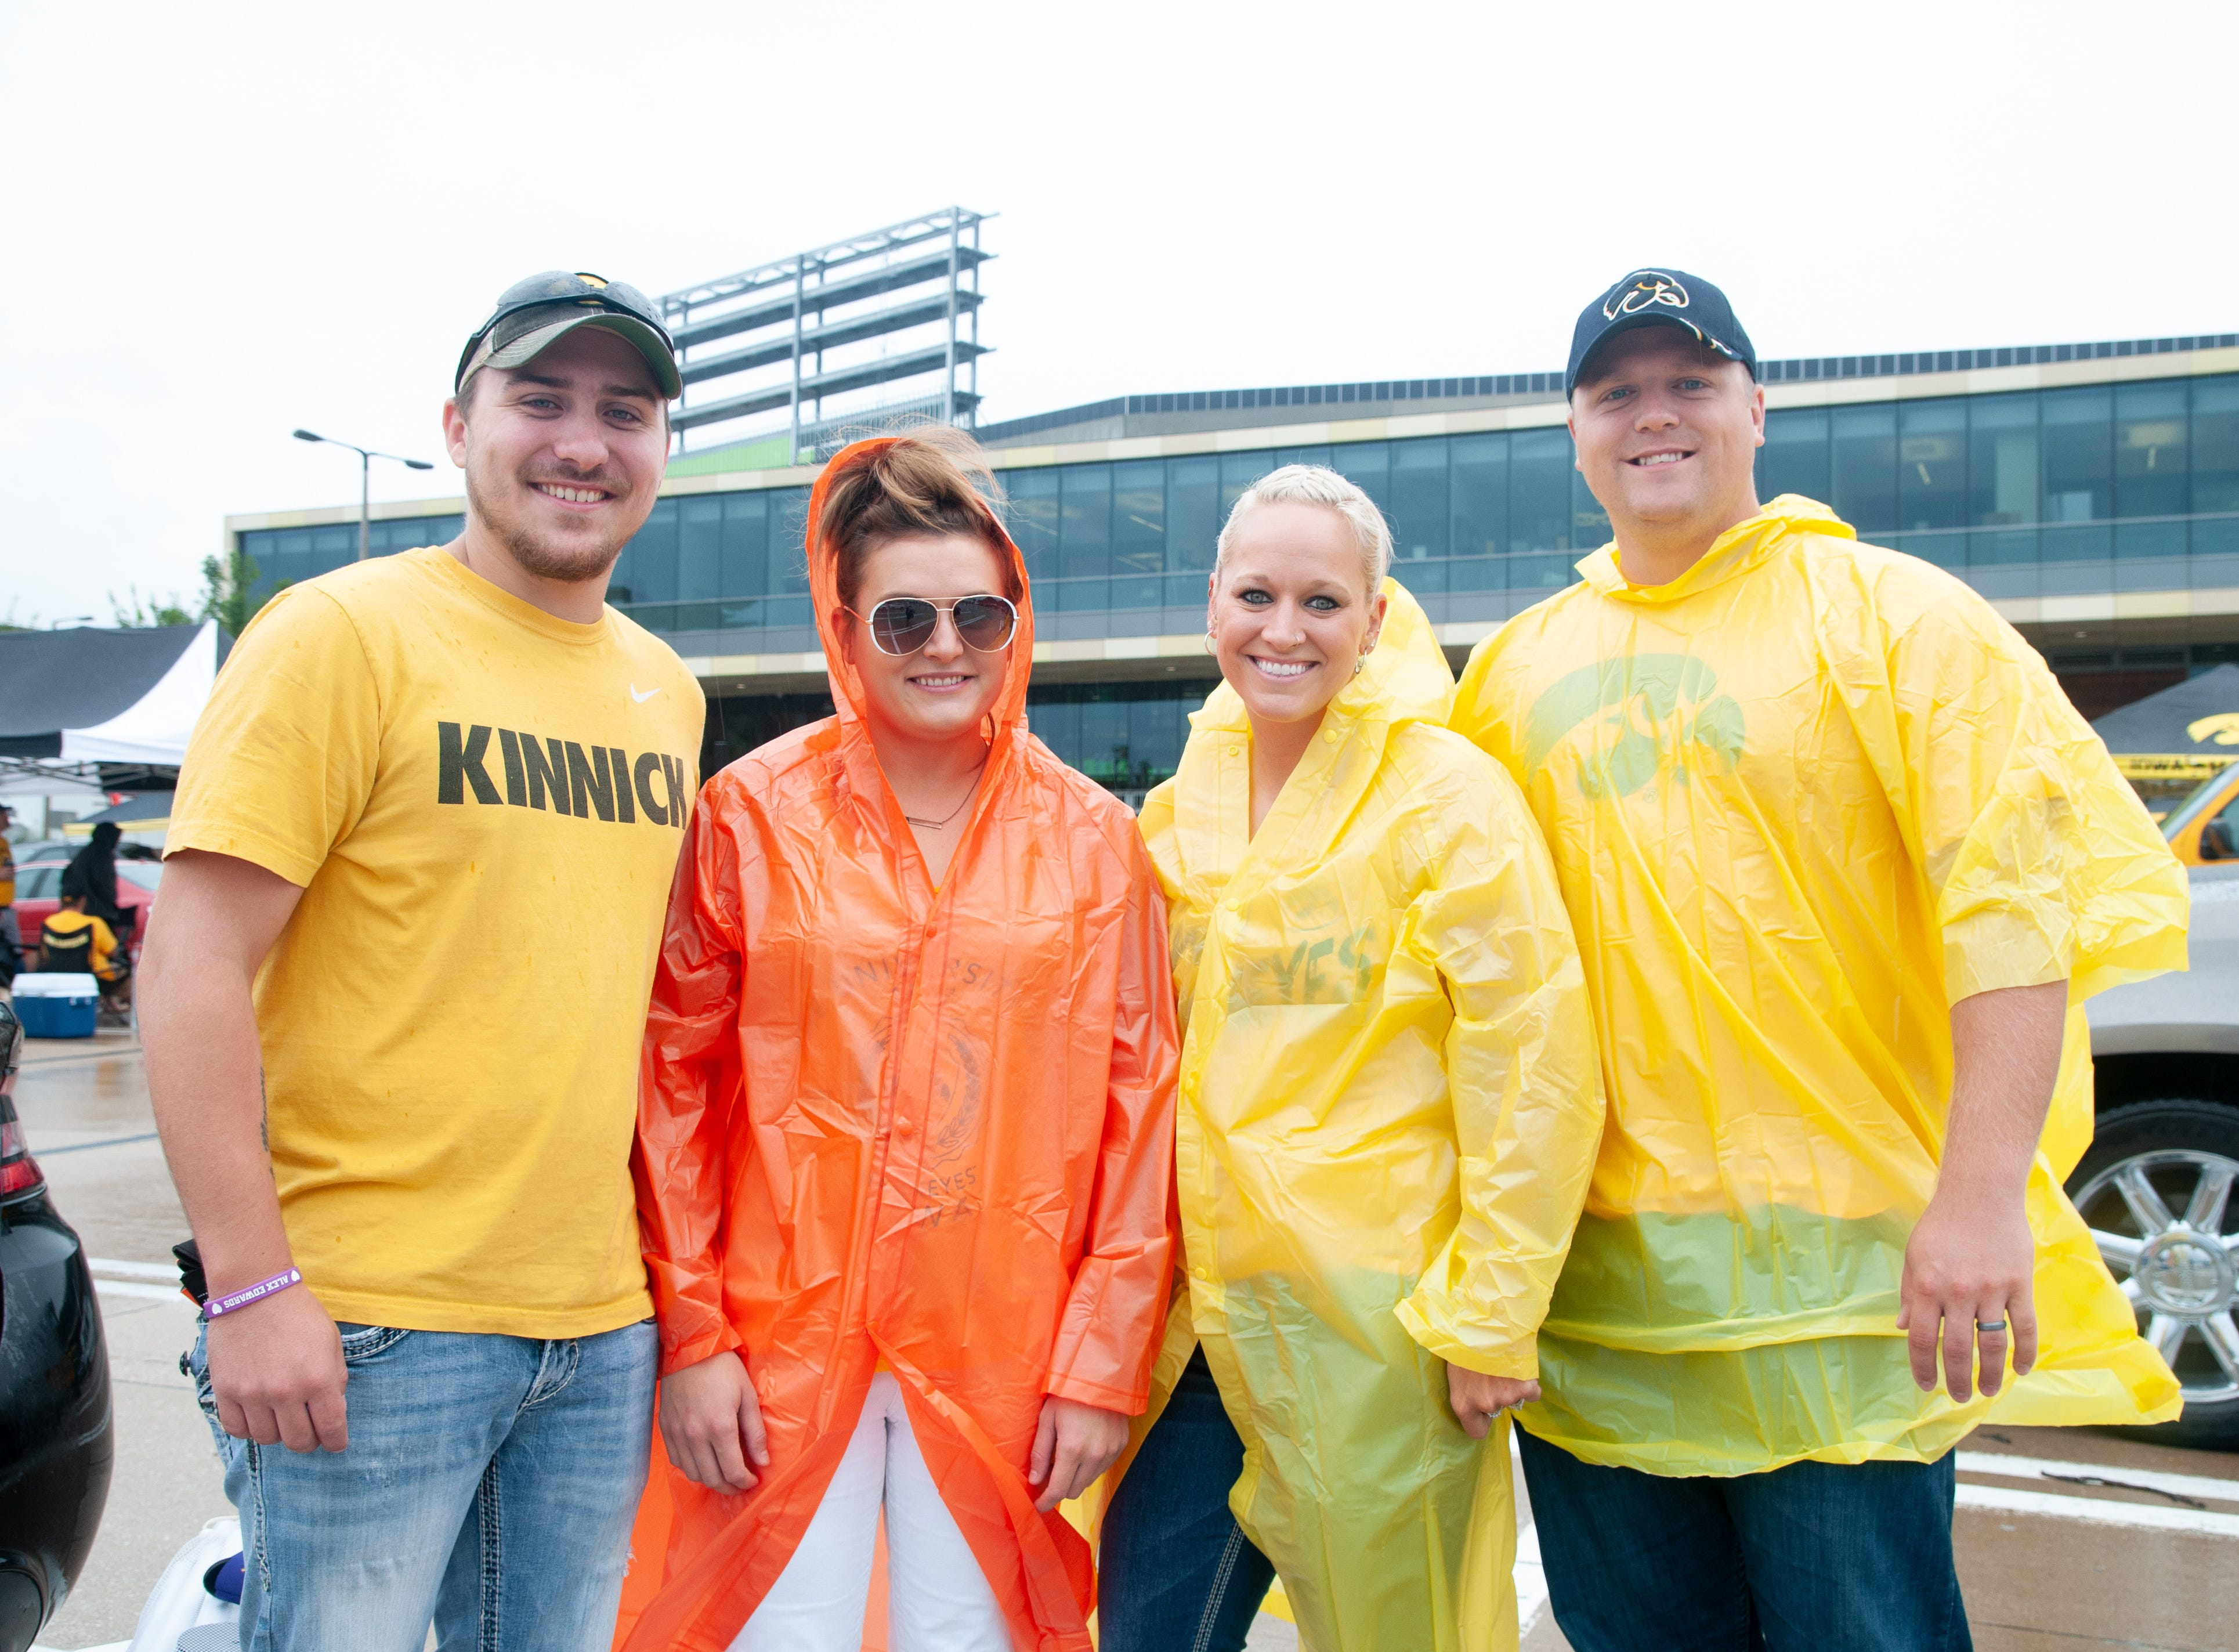 Derek Paetz, 23, (left), Alex Eagle, 24, Kalli Anson, 31, and Mike Anson, 30, of Muscatine, Saturday, Sept. 1, 2018, while tailgating before the Iowa game against Northern Illinois in Iowa City.